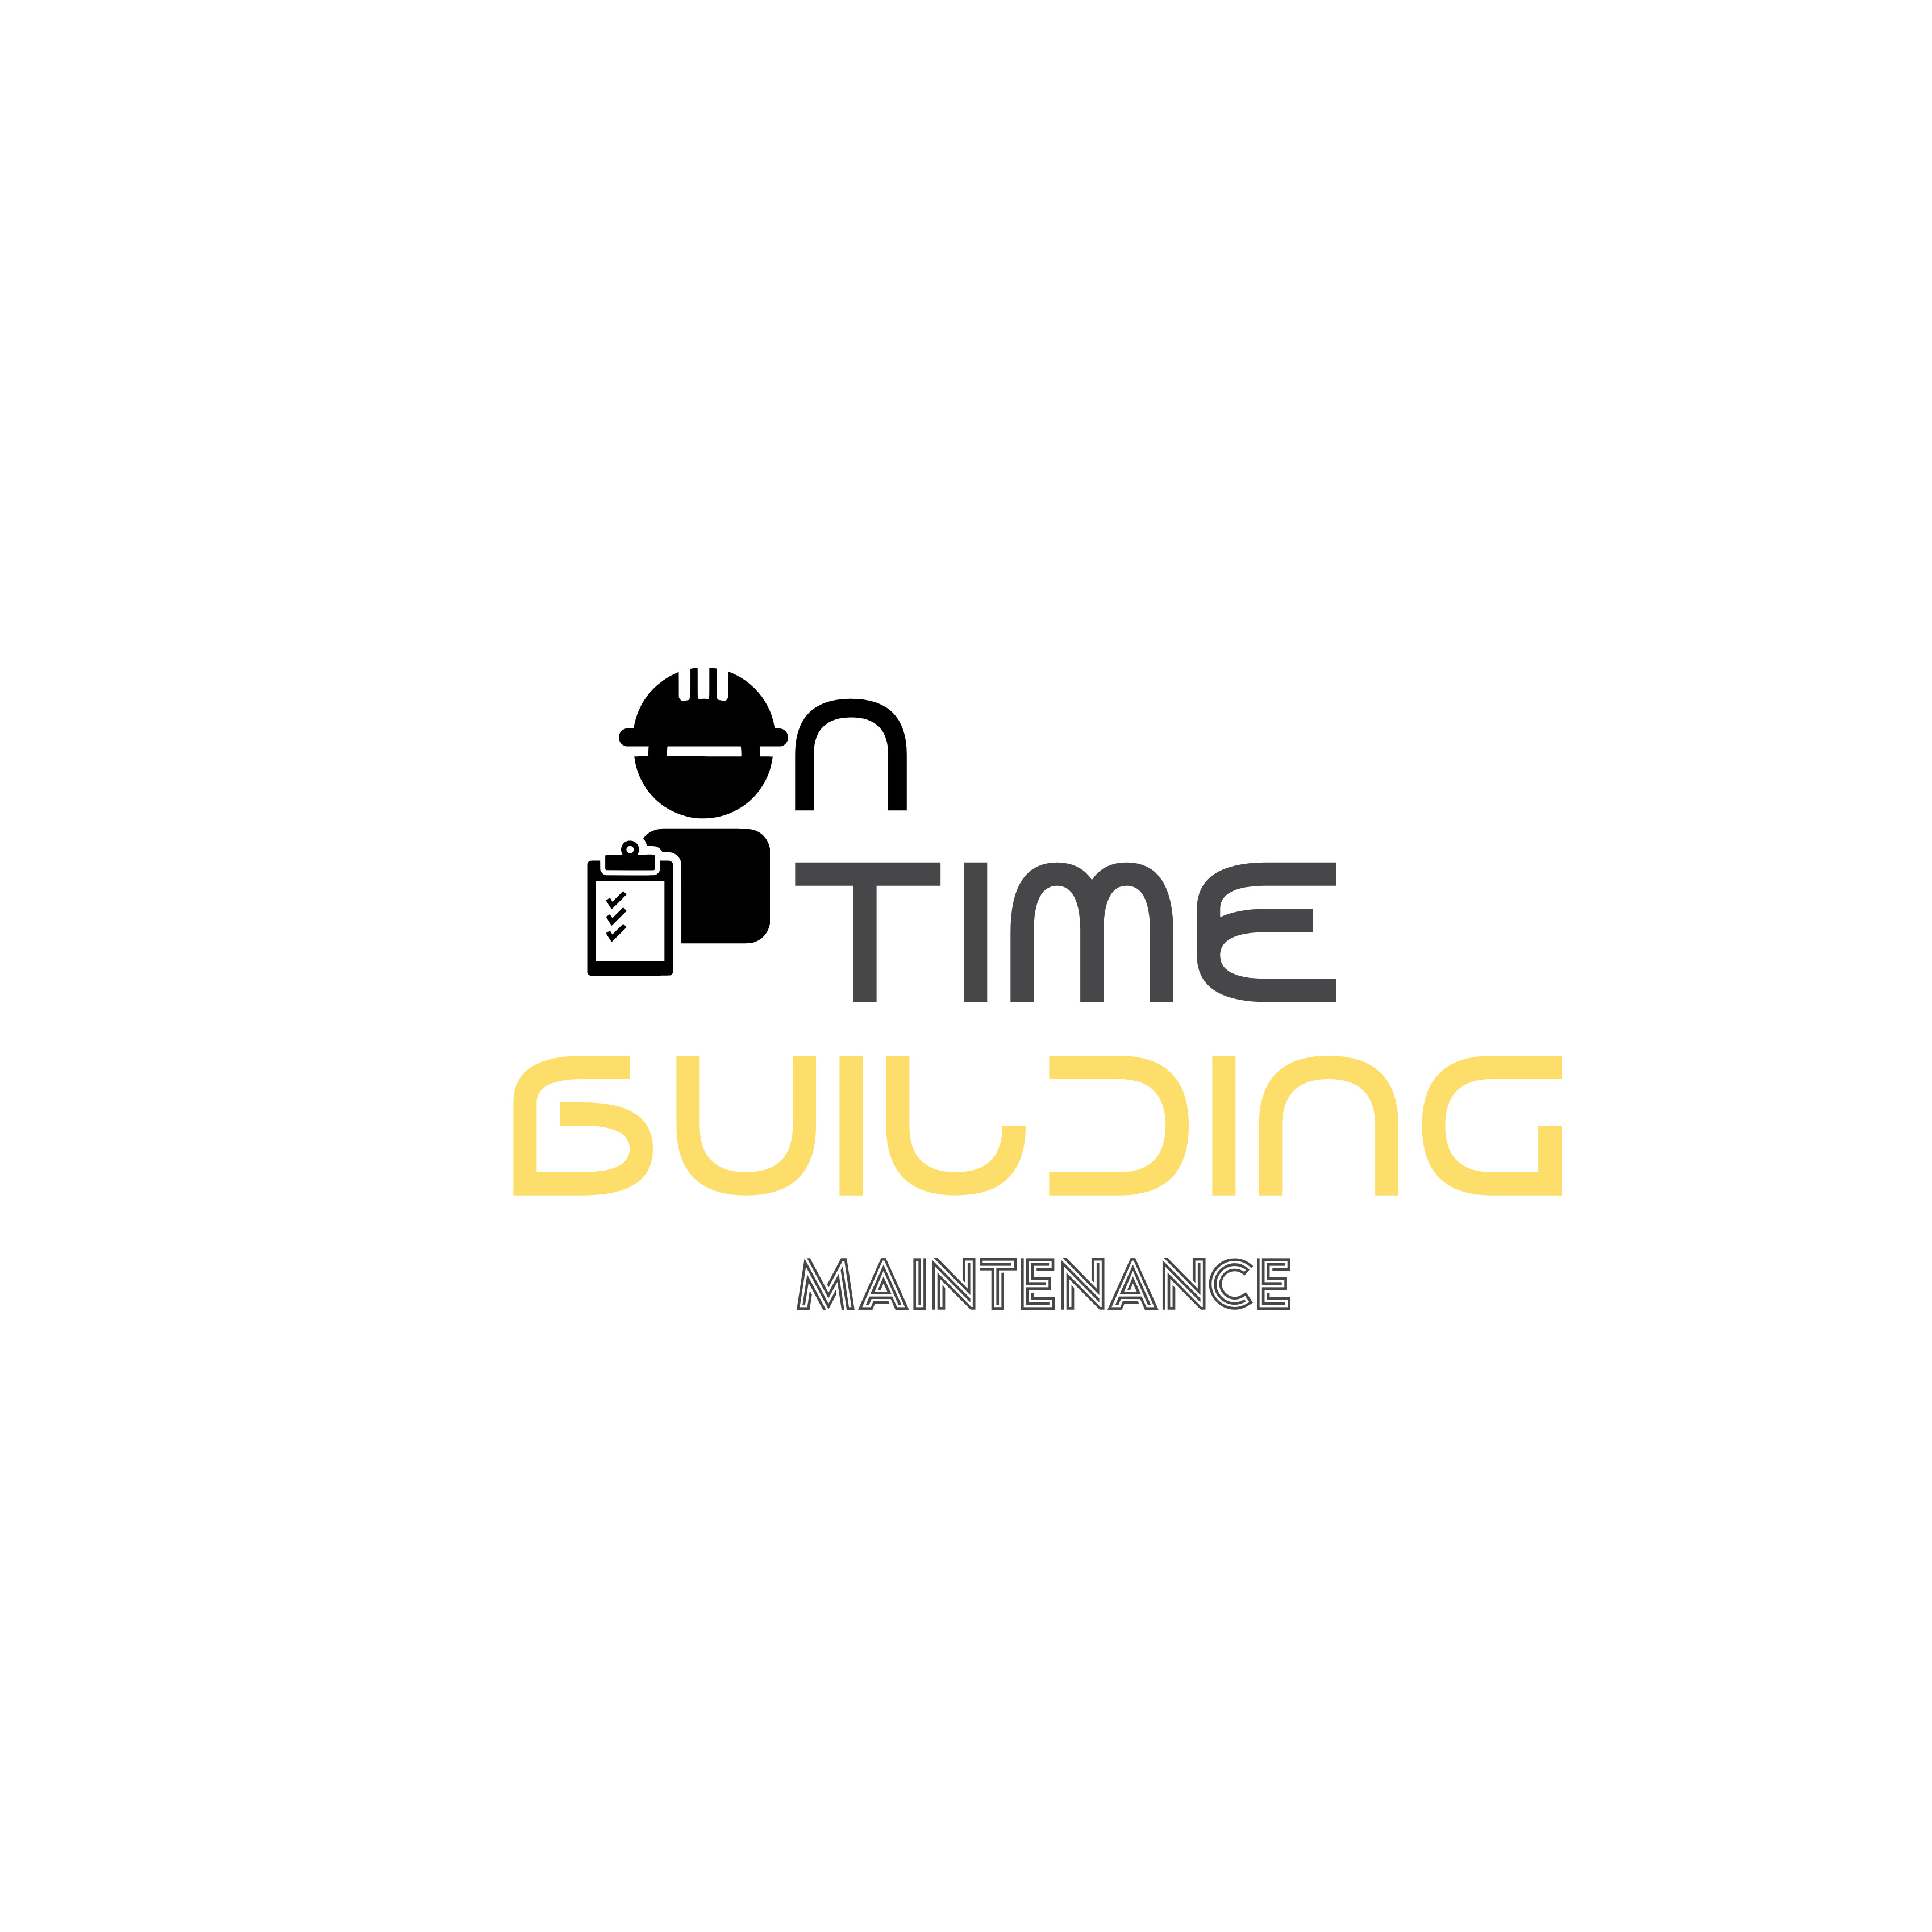 On Time Building Maintenance - brooklyn, NY 11225 - (718)414-5046 | ShowMeLocal.com